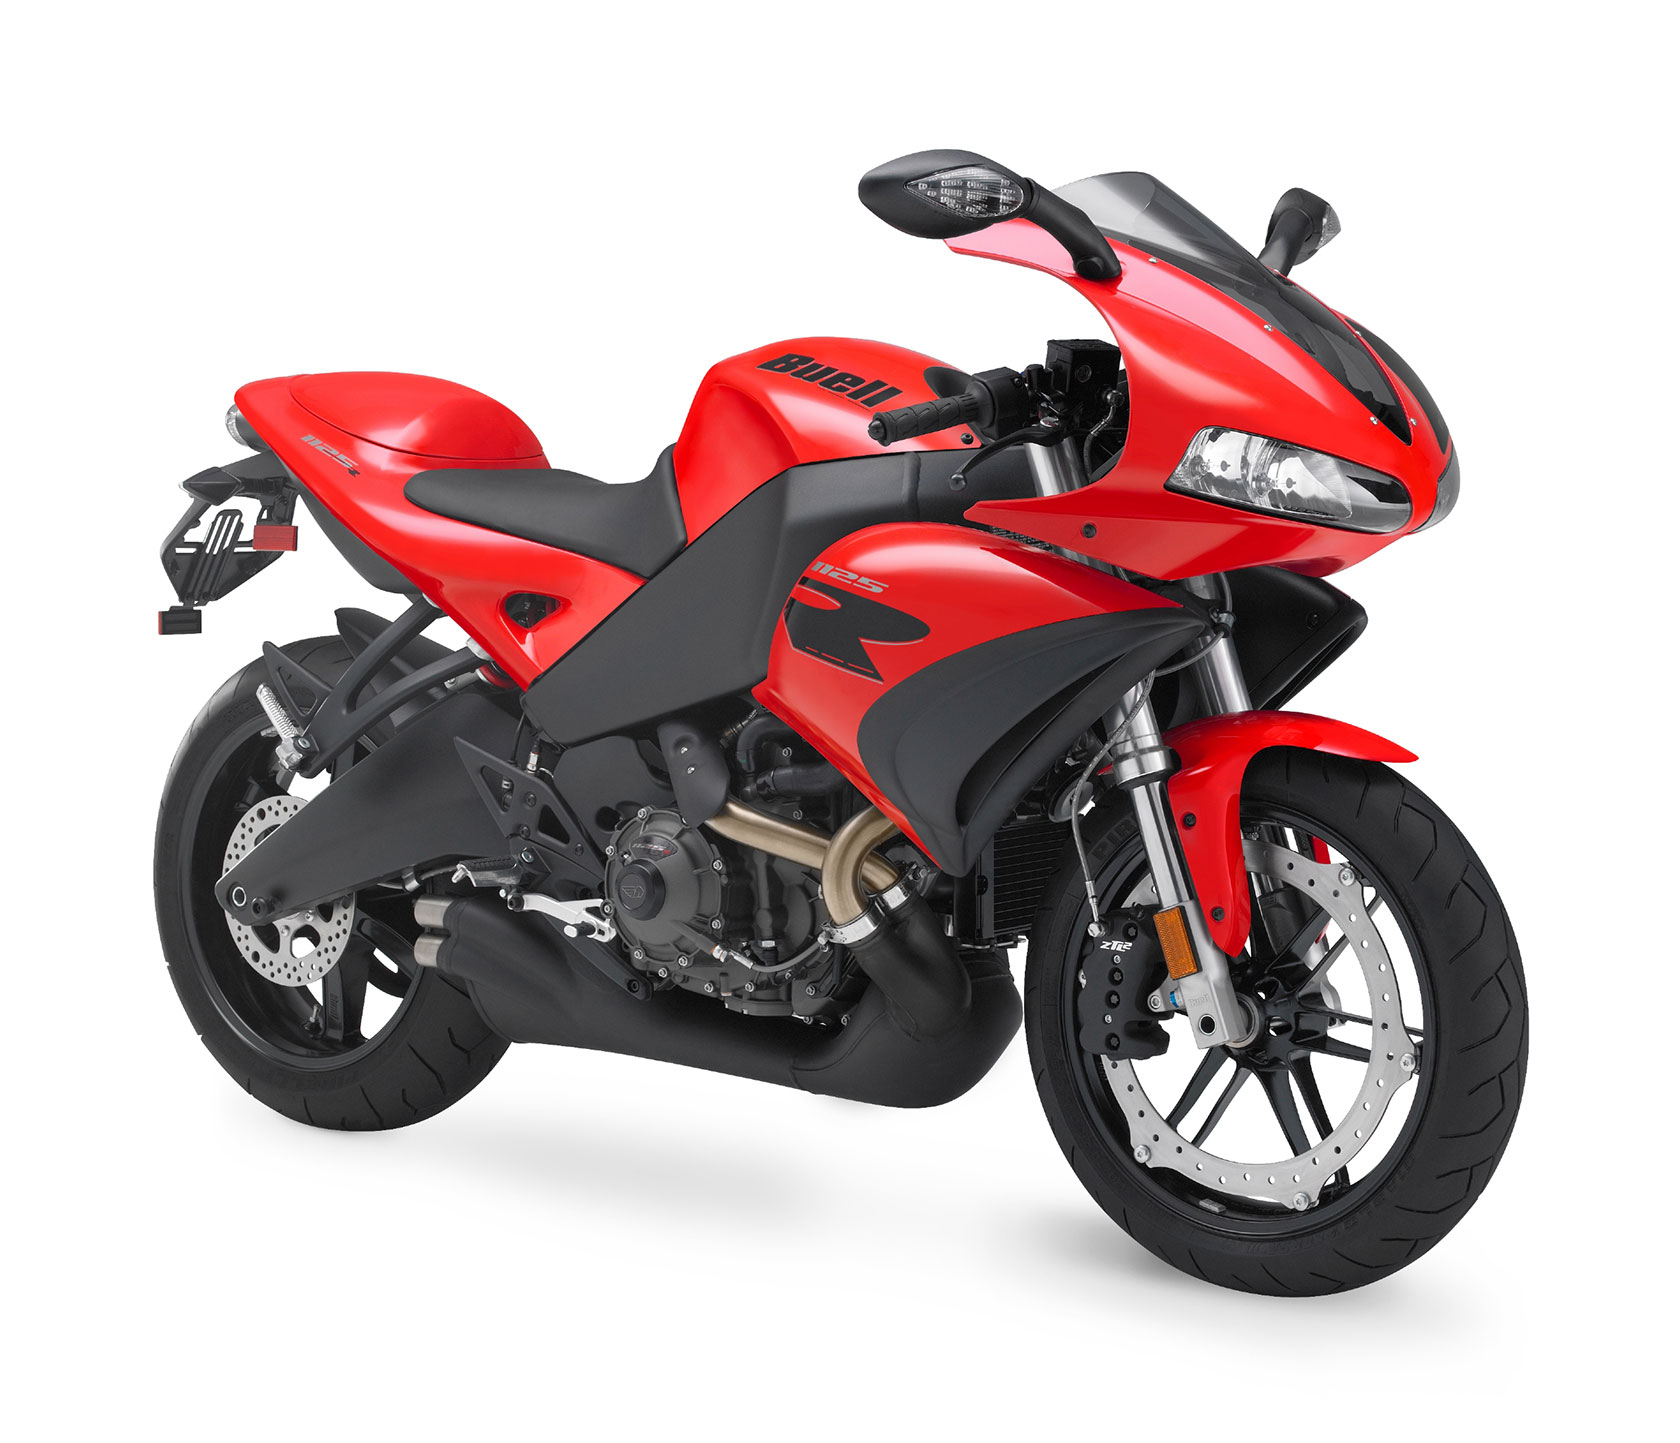 2010 Buell 1125R Superbike Picture